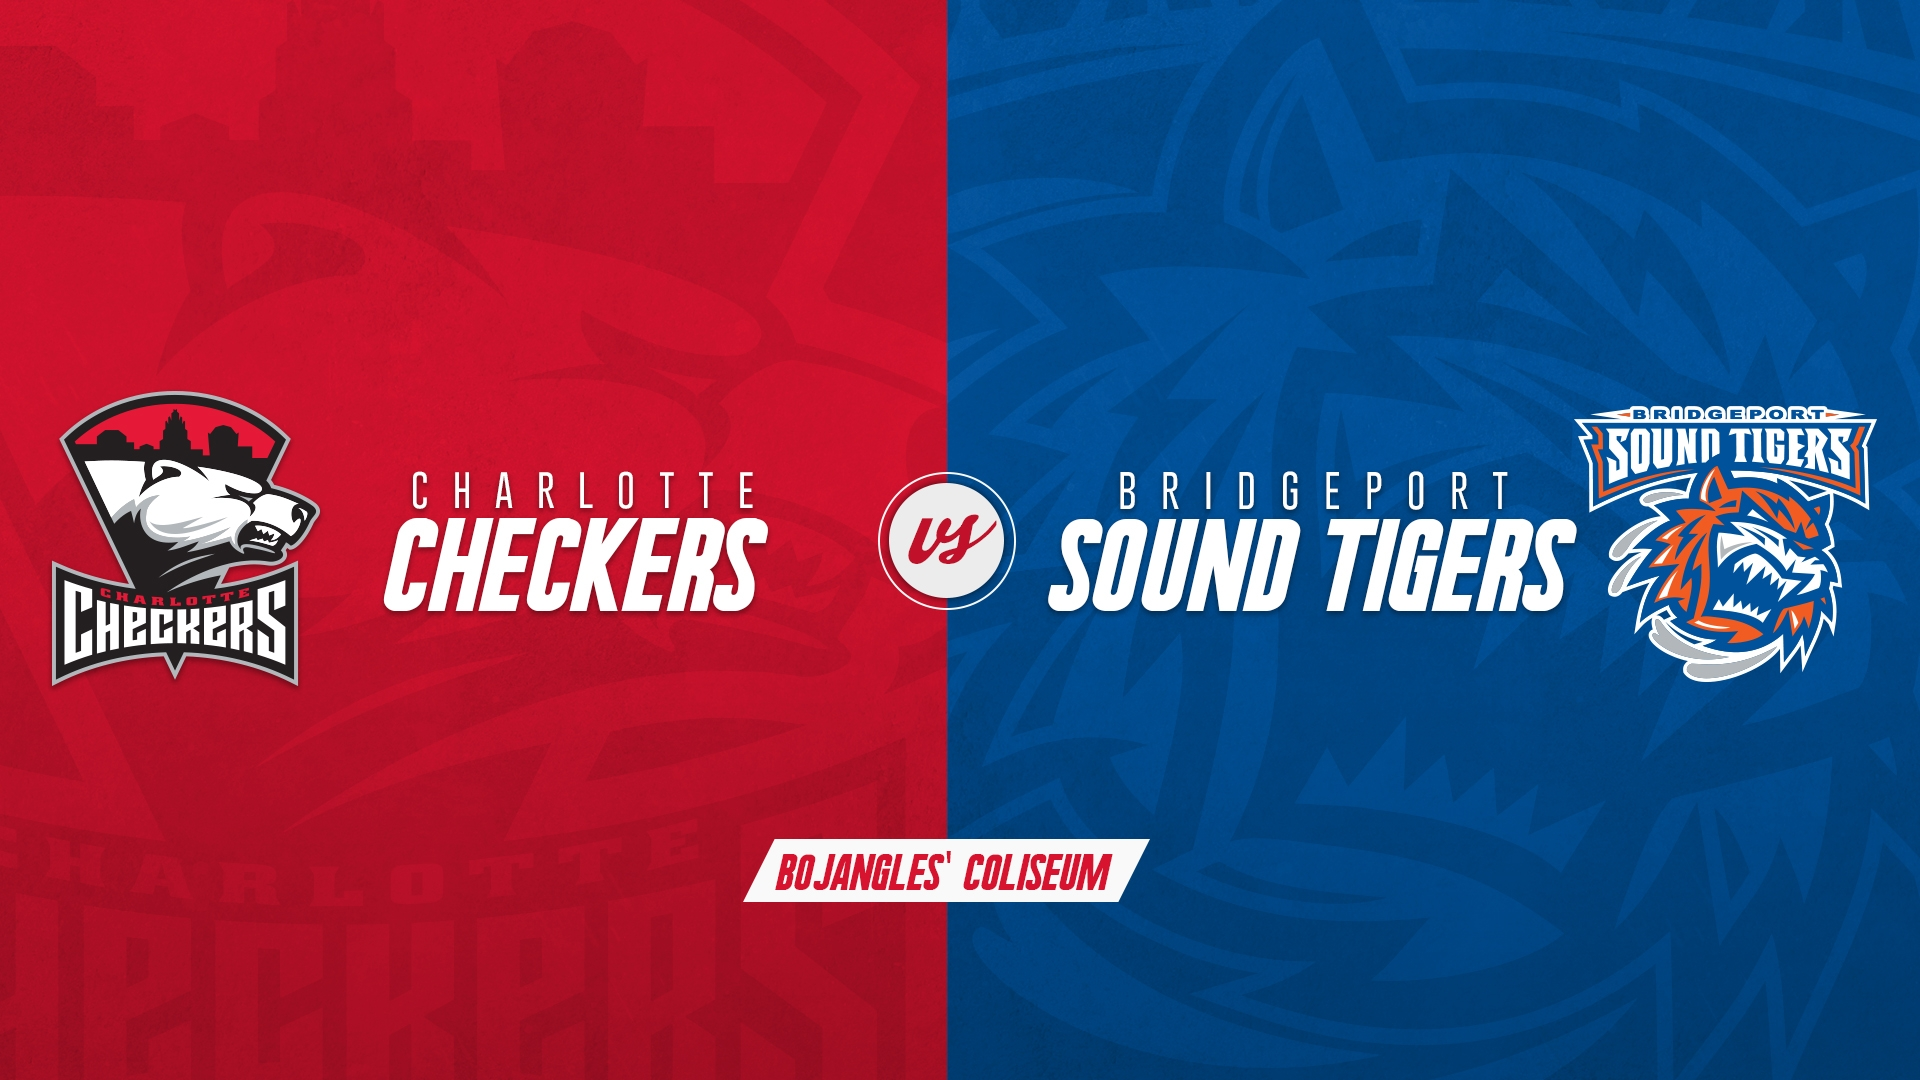 Charlotte Checkers vs. Bridgeport Sound Tigers